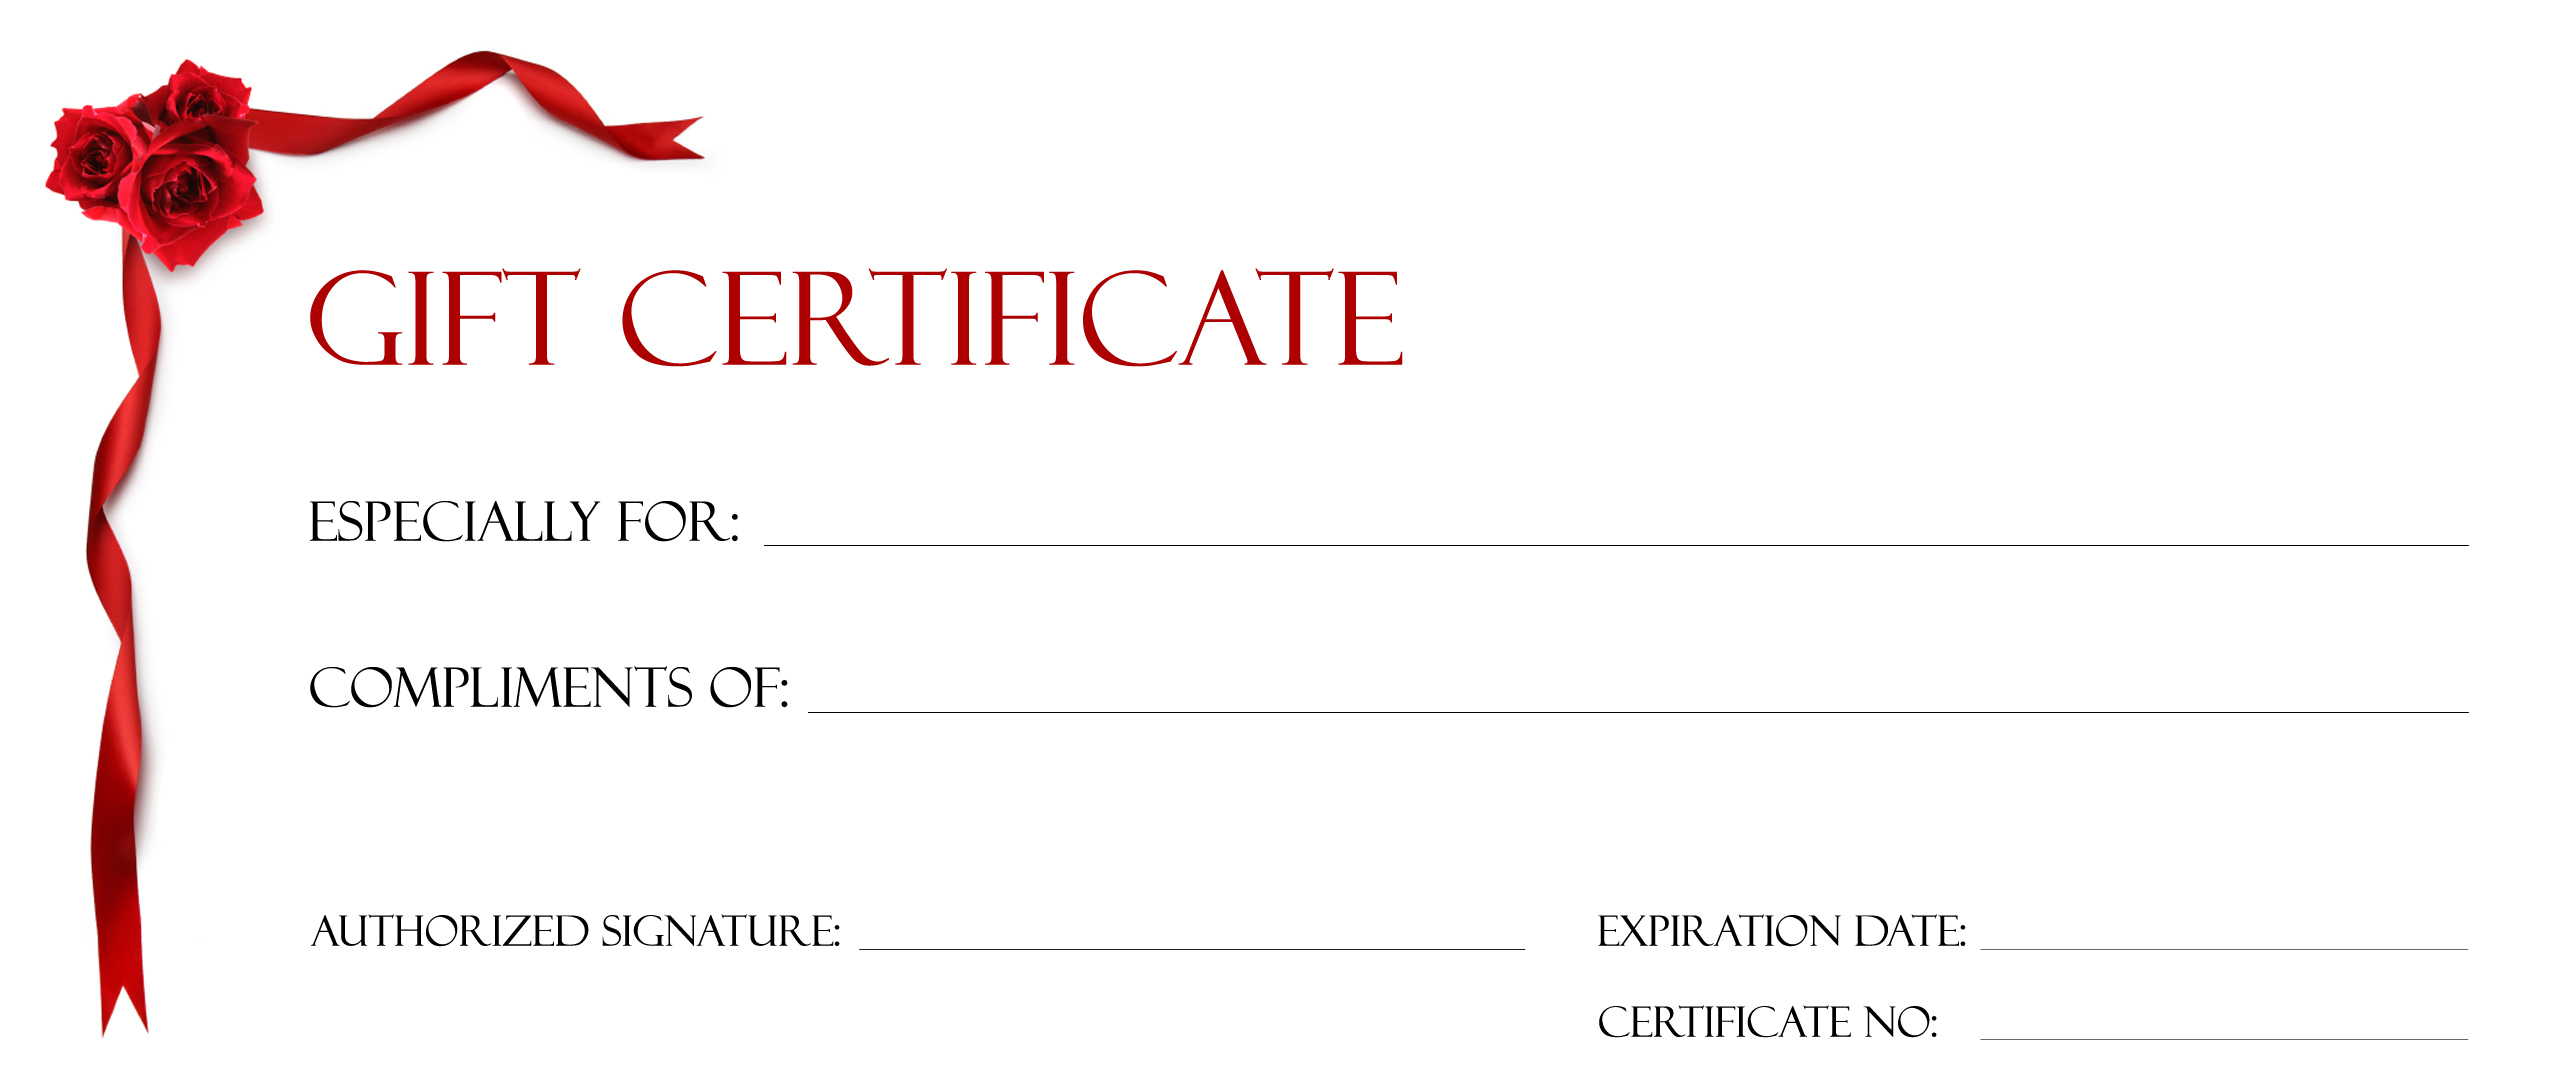 Gift Certificate Template Google Docs - Reeviewer.co - Free Printable Tattoo Gift Certificates